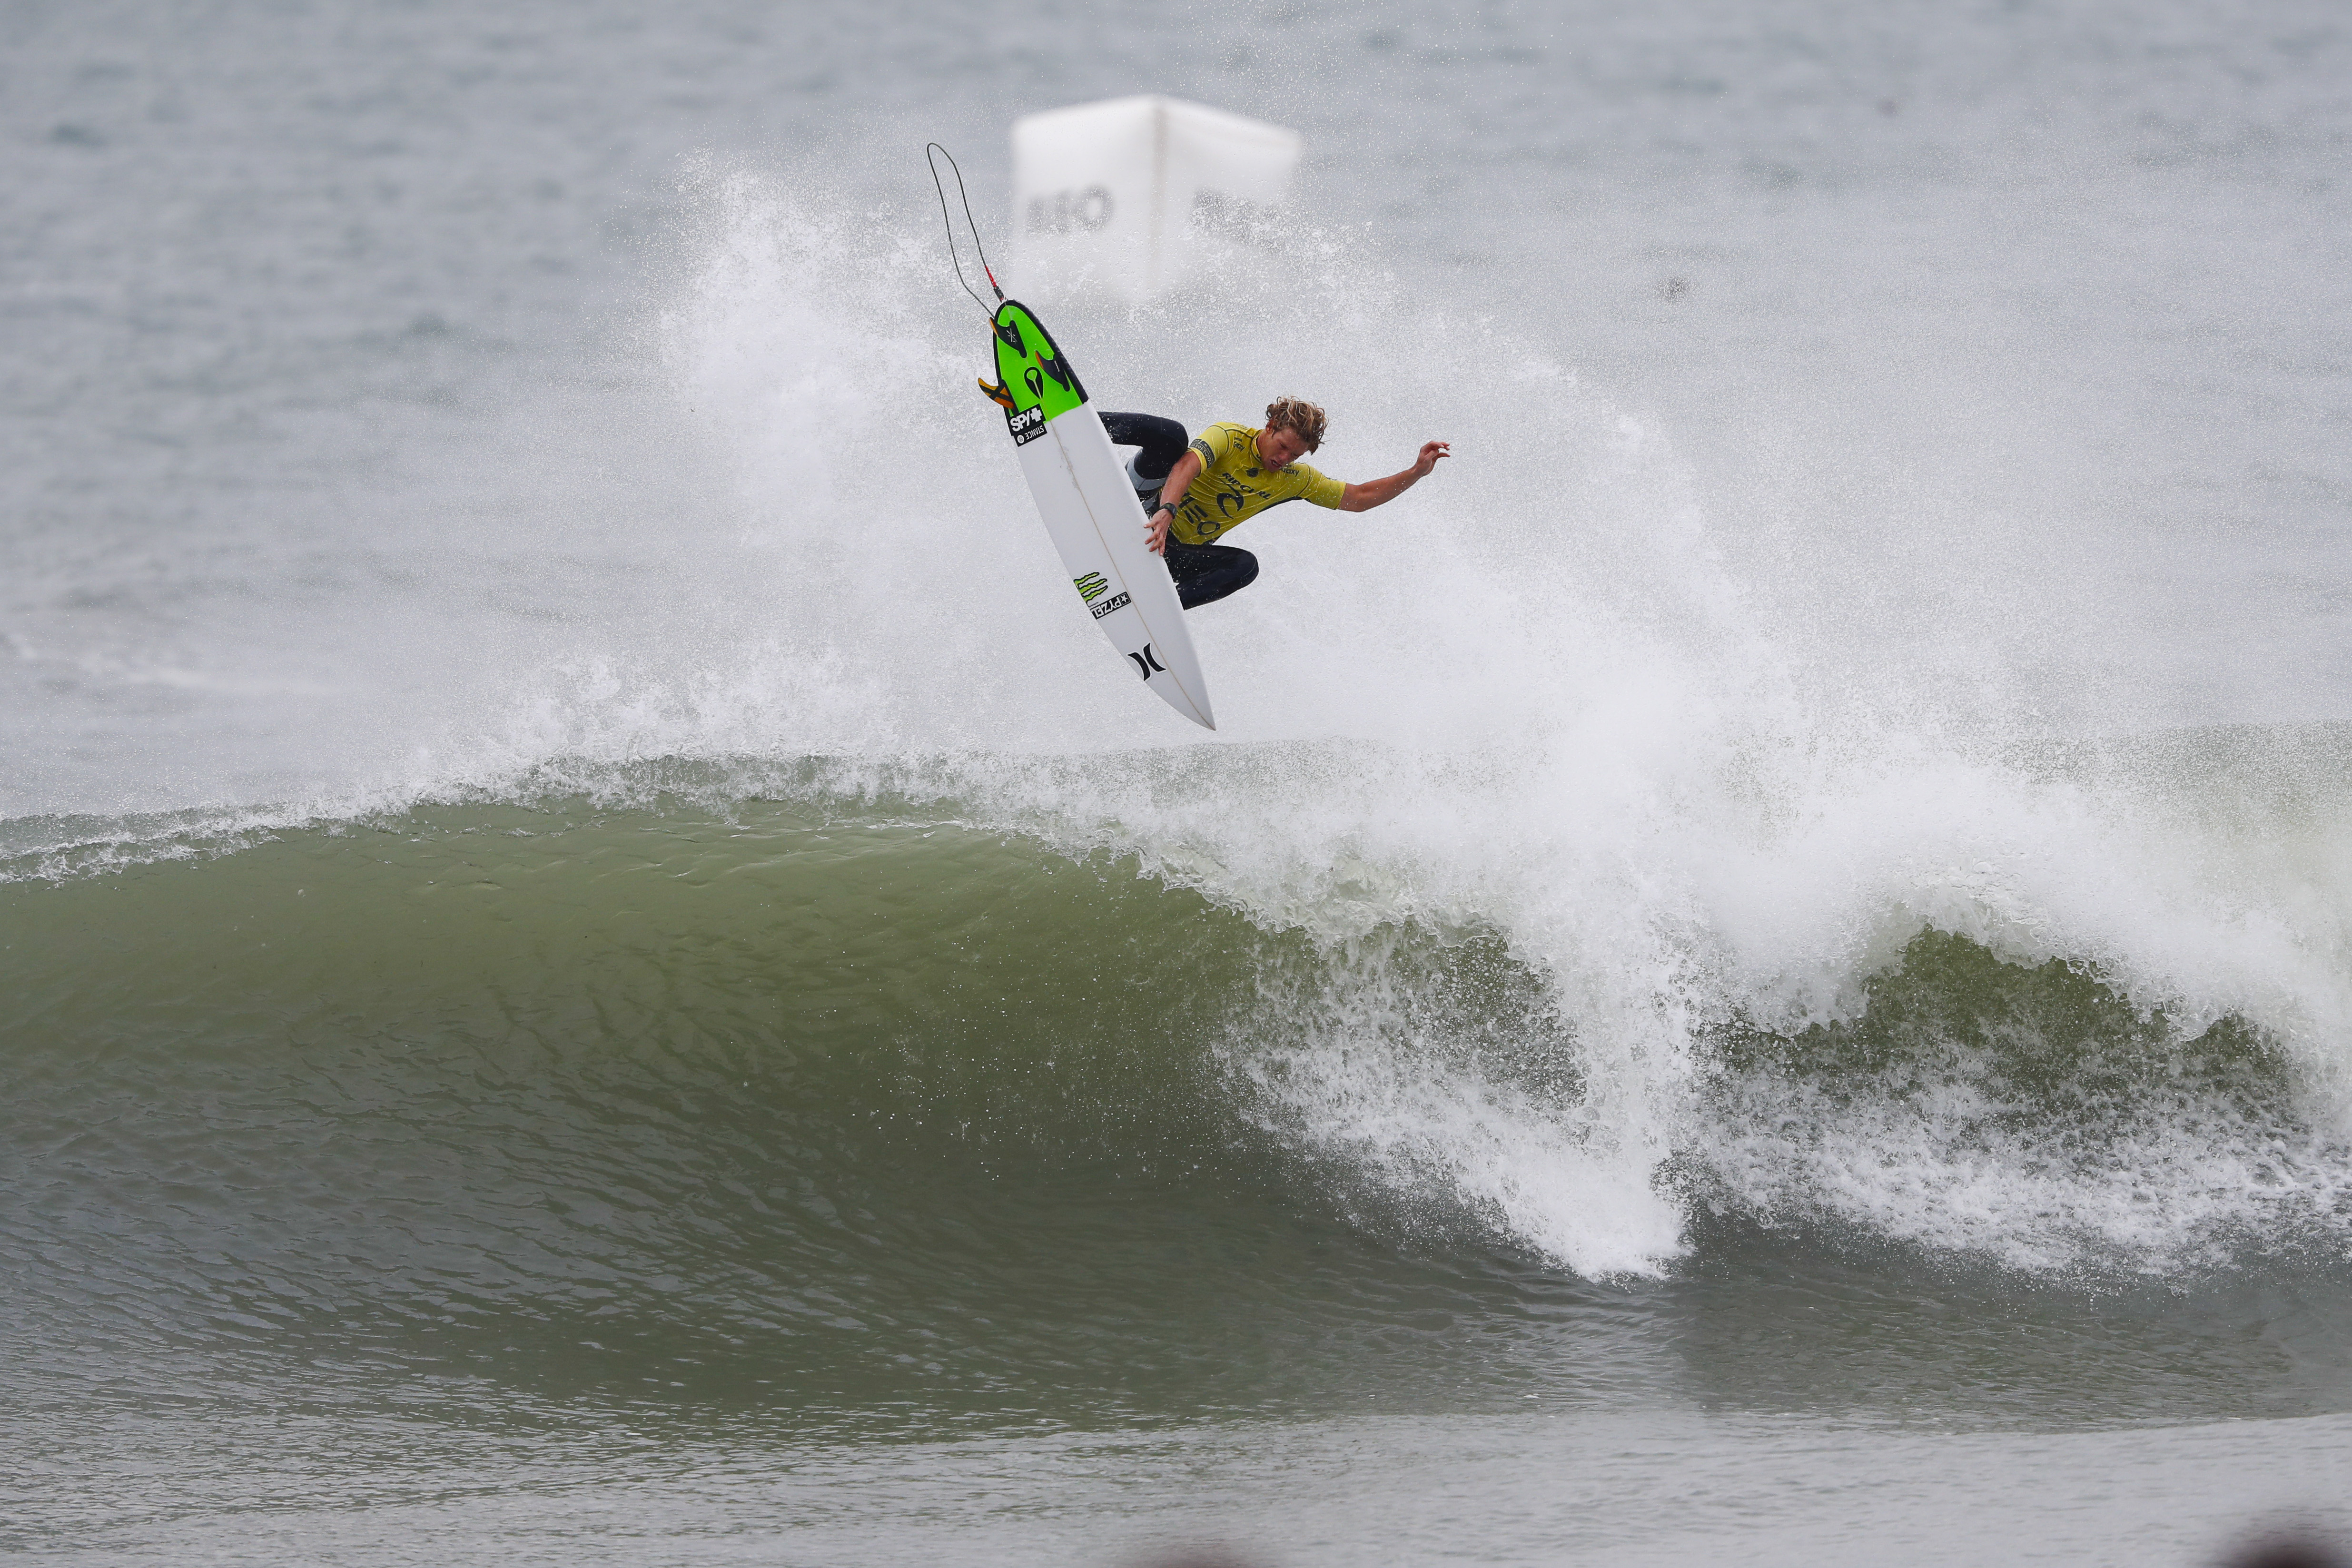 John John Florence winning the Final of the Rip Curl Pro Portugal. Photo: WSL